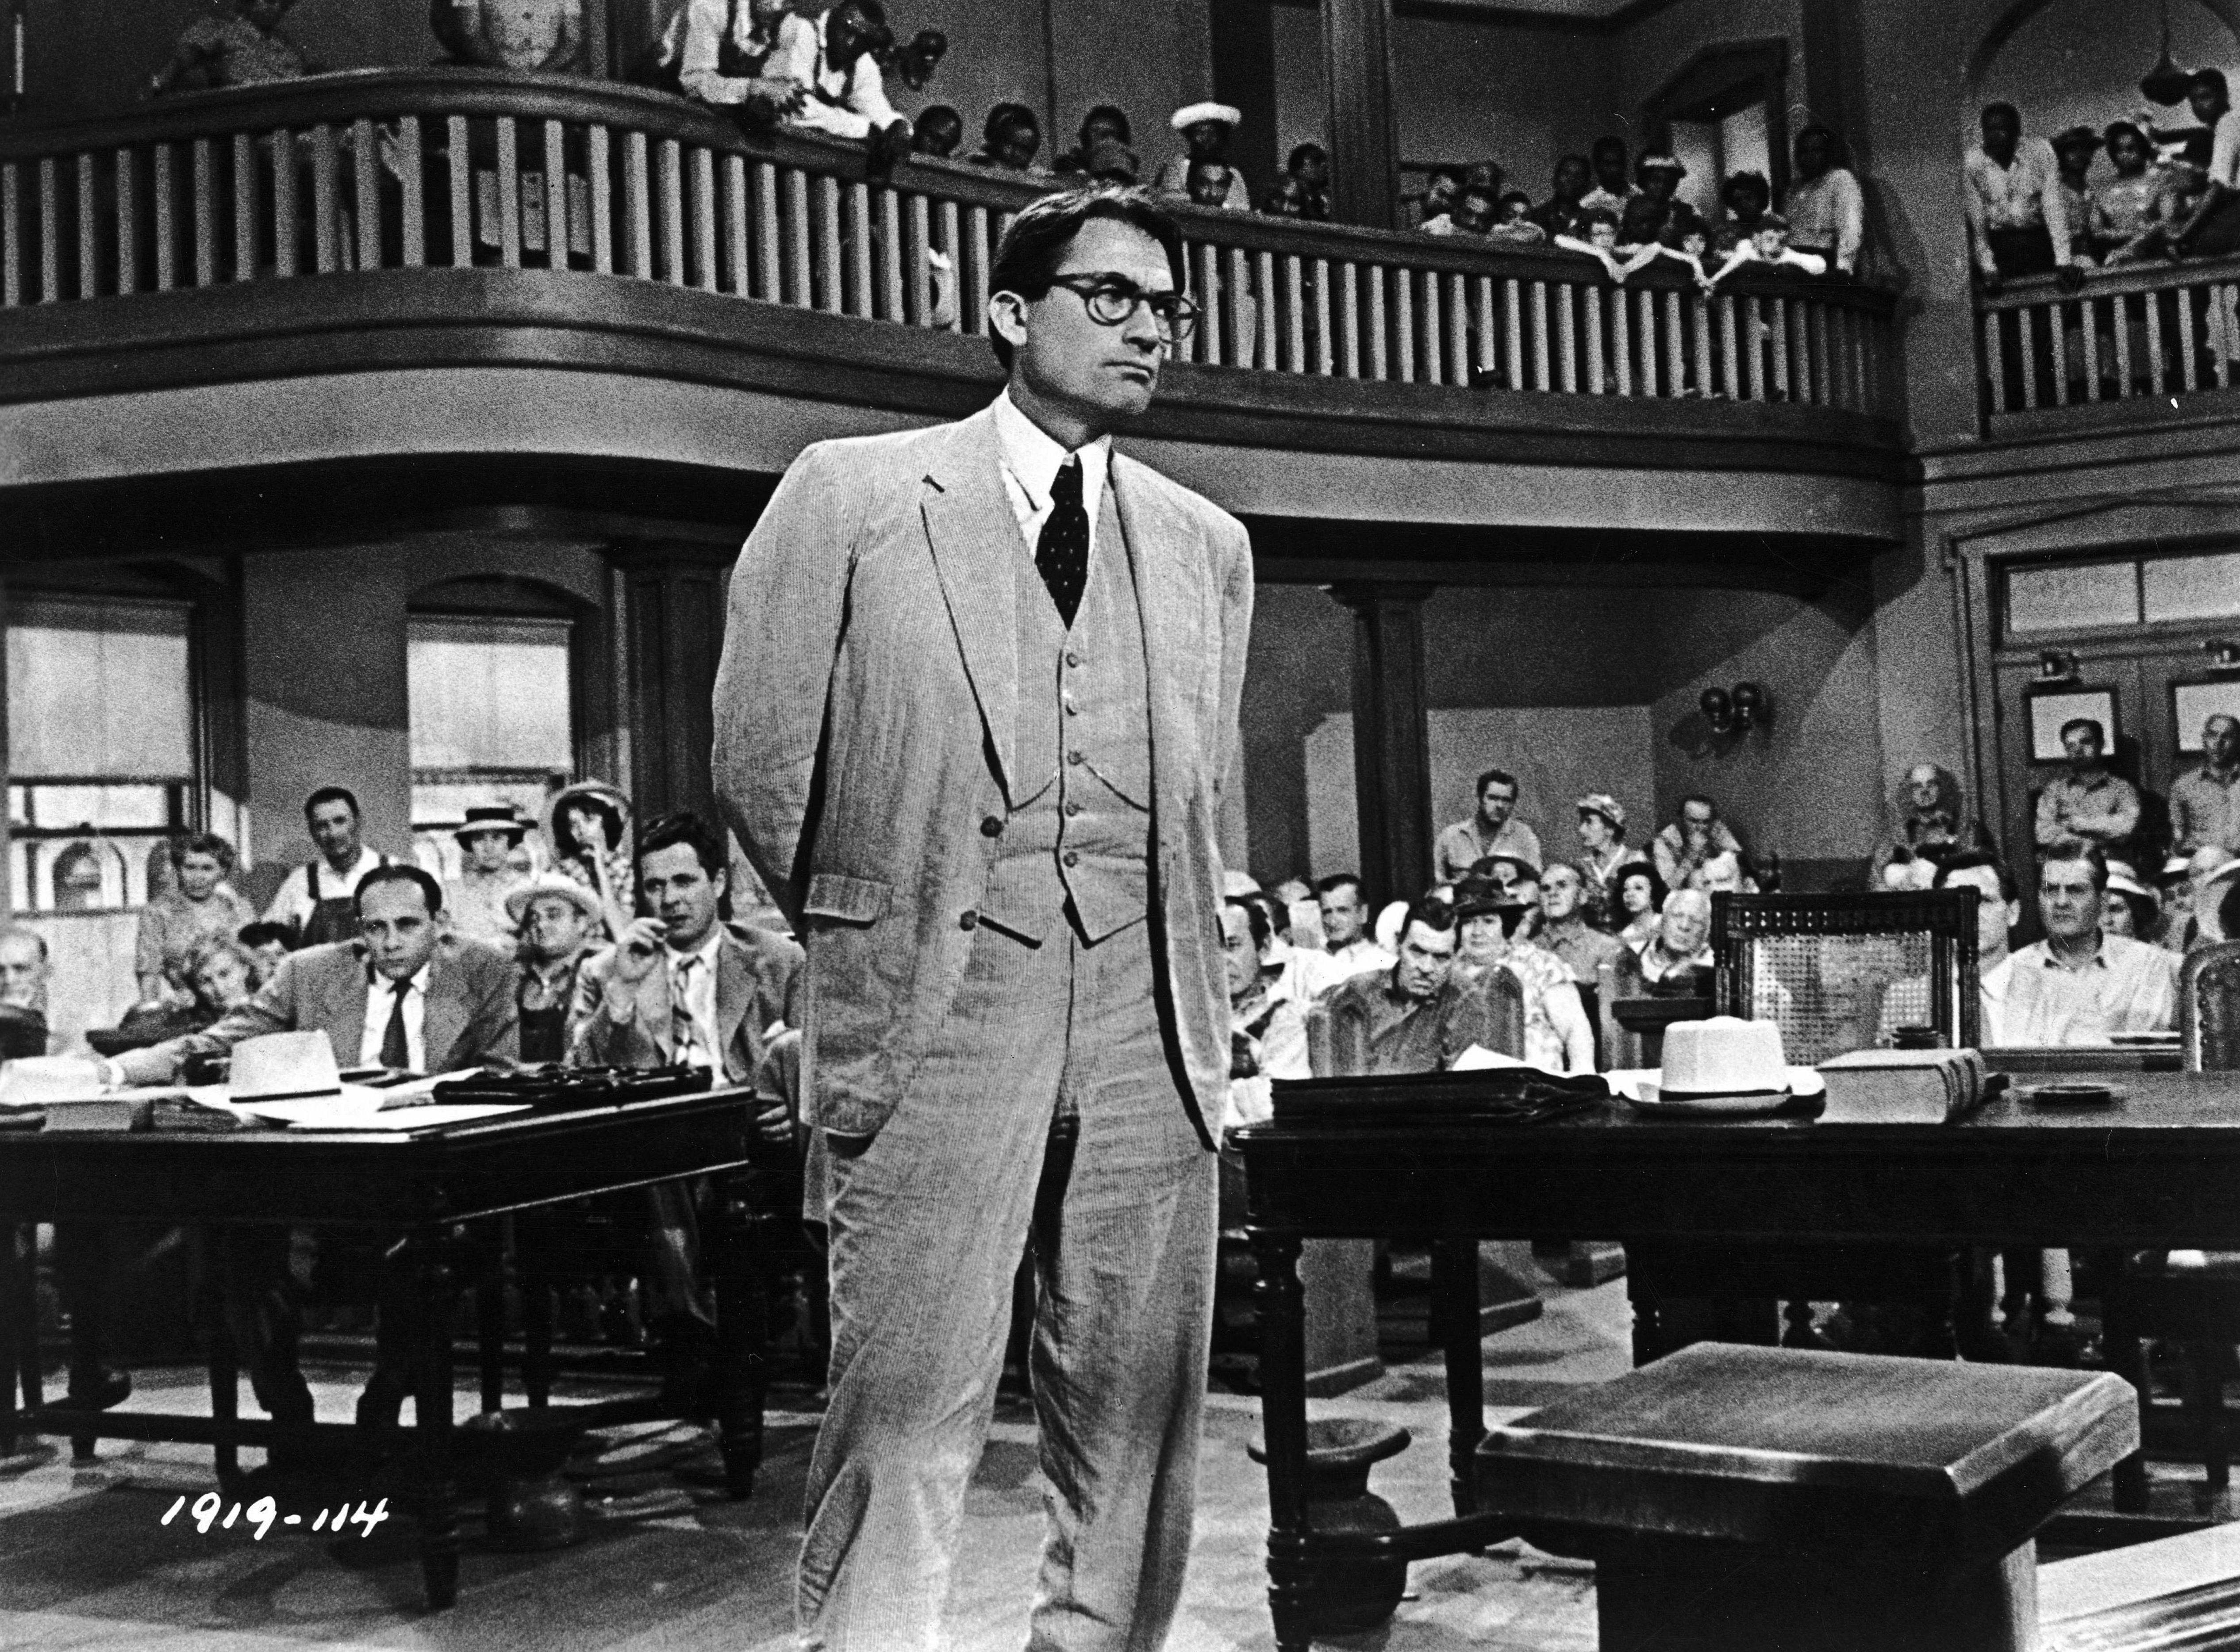 001 The direction and cinematography in To Kill a Mockingbird